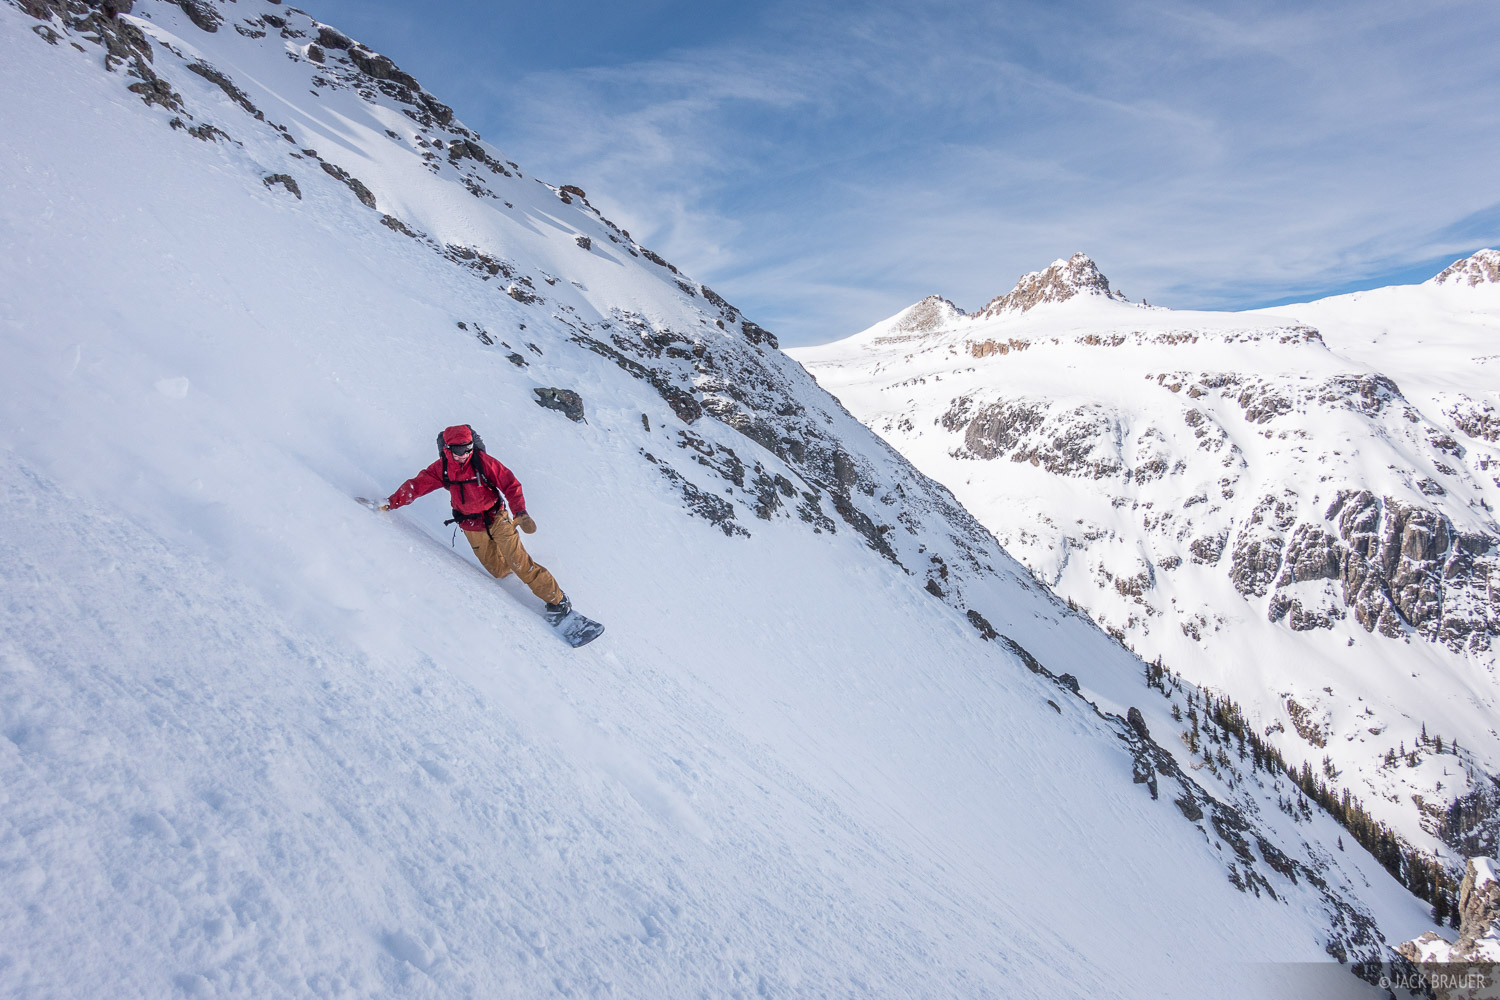 Chatanooga, Jason Mullins, snowboarding, San Juan Mountains, Colorado, photo